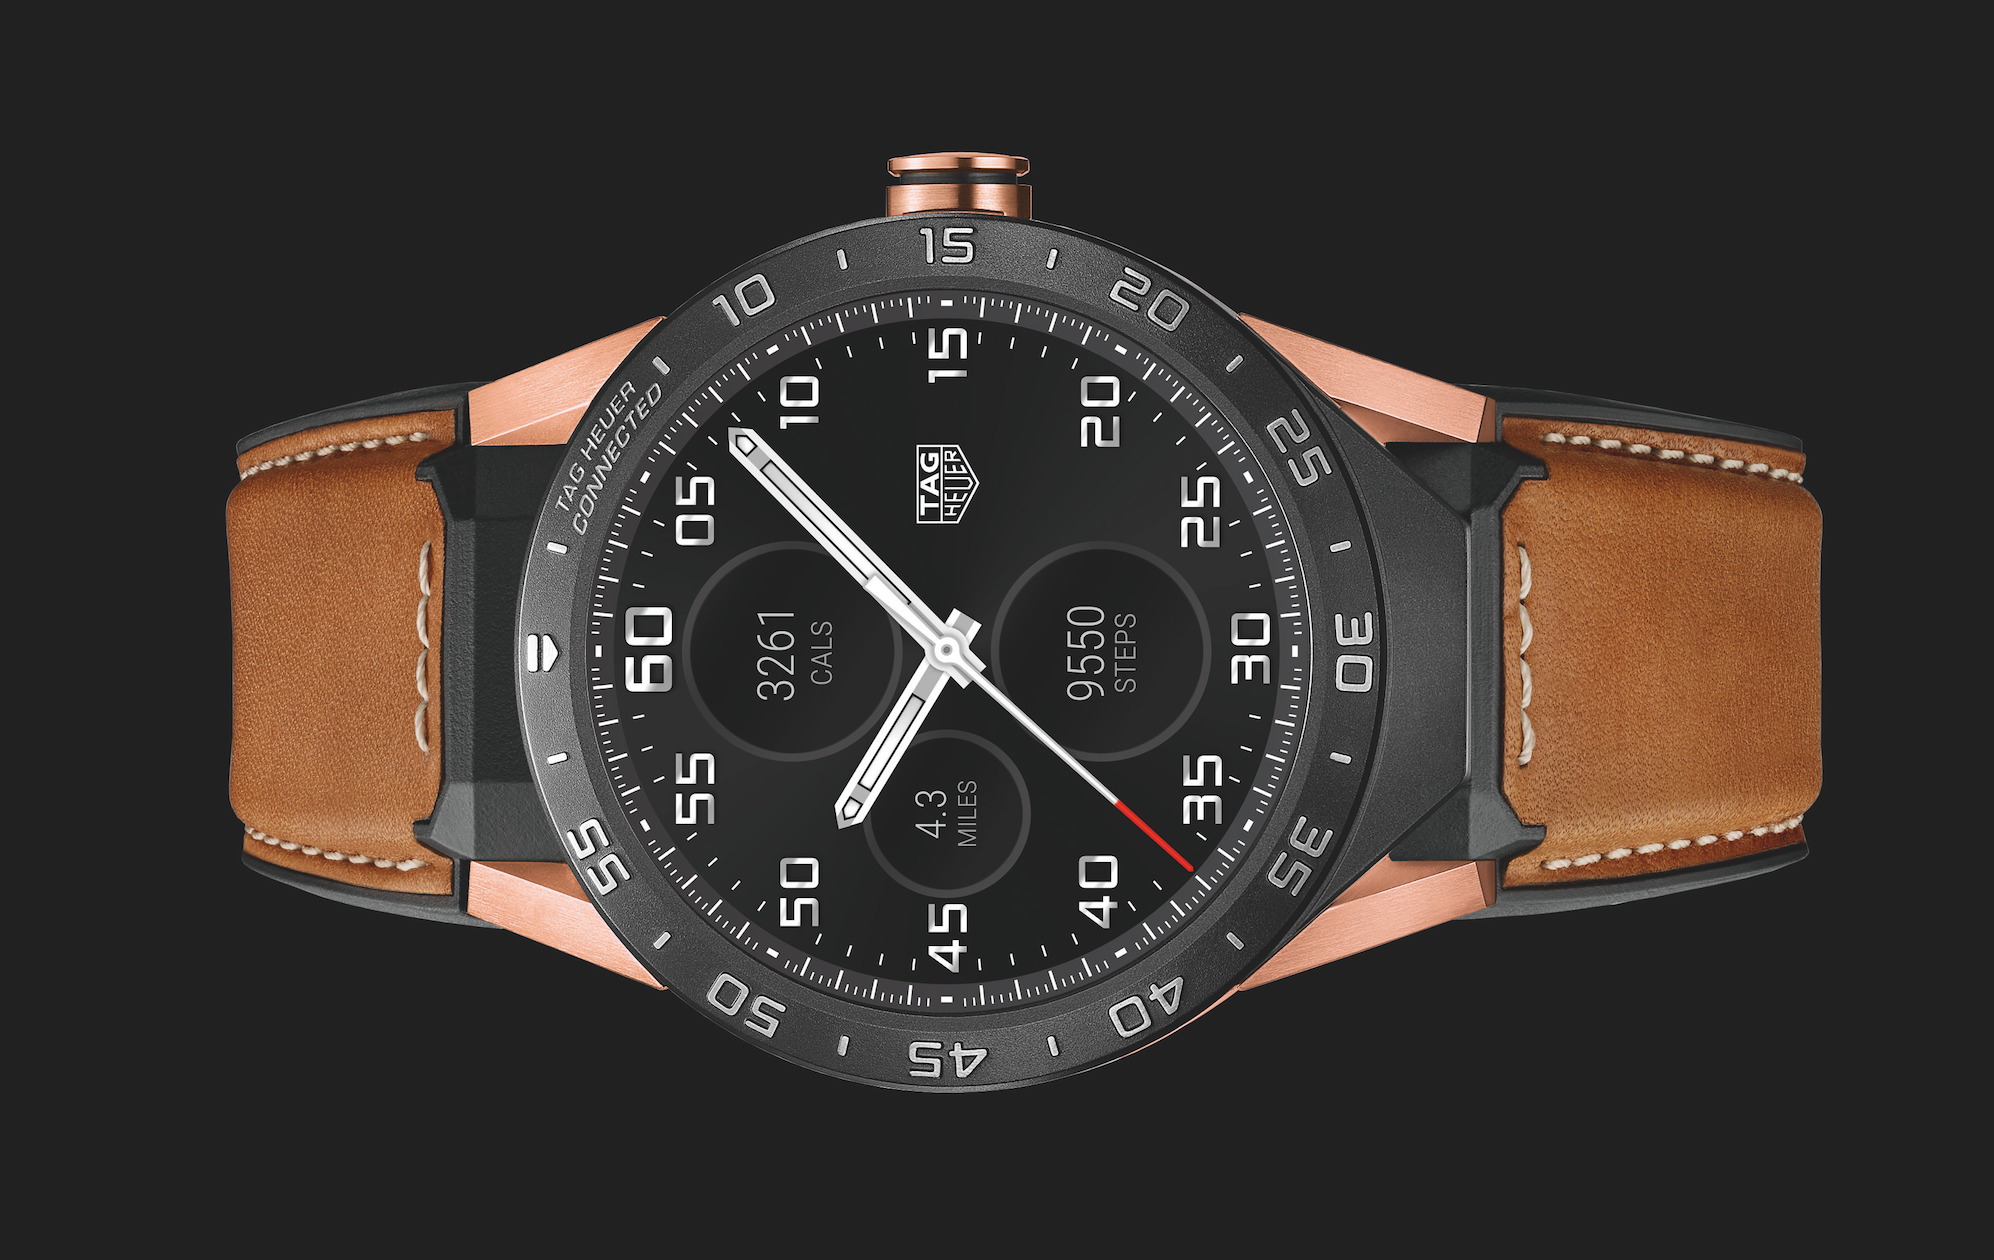 Introducing: The TAG Heuer Connected Watch Now In Solid Rose Gold (For $9,900) Introducing: The TAG Heuer Connected Watch Now In Solid Rose Gold (For $9,900) Screen Shot 2016 10 29 at 9